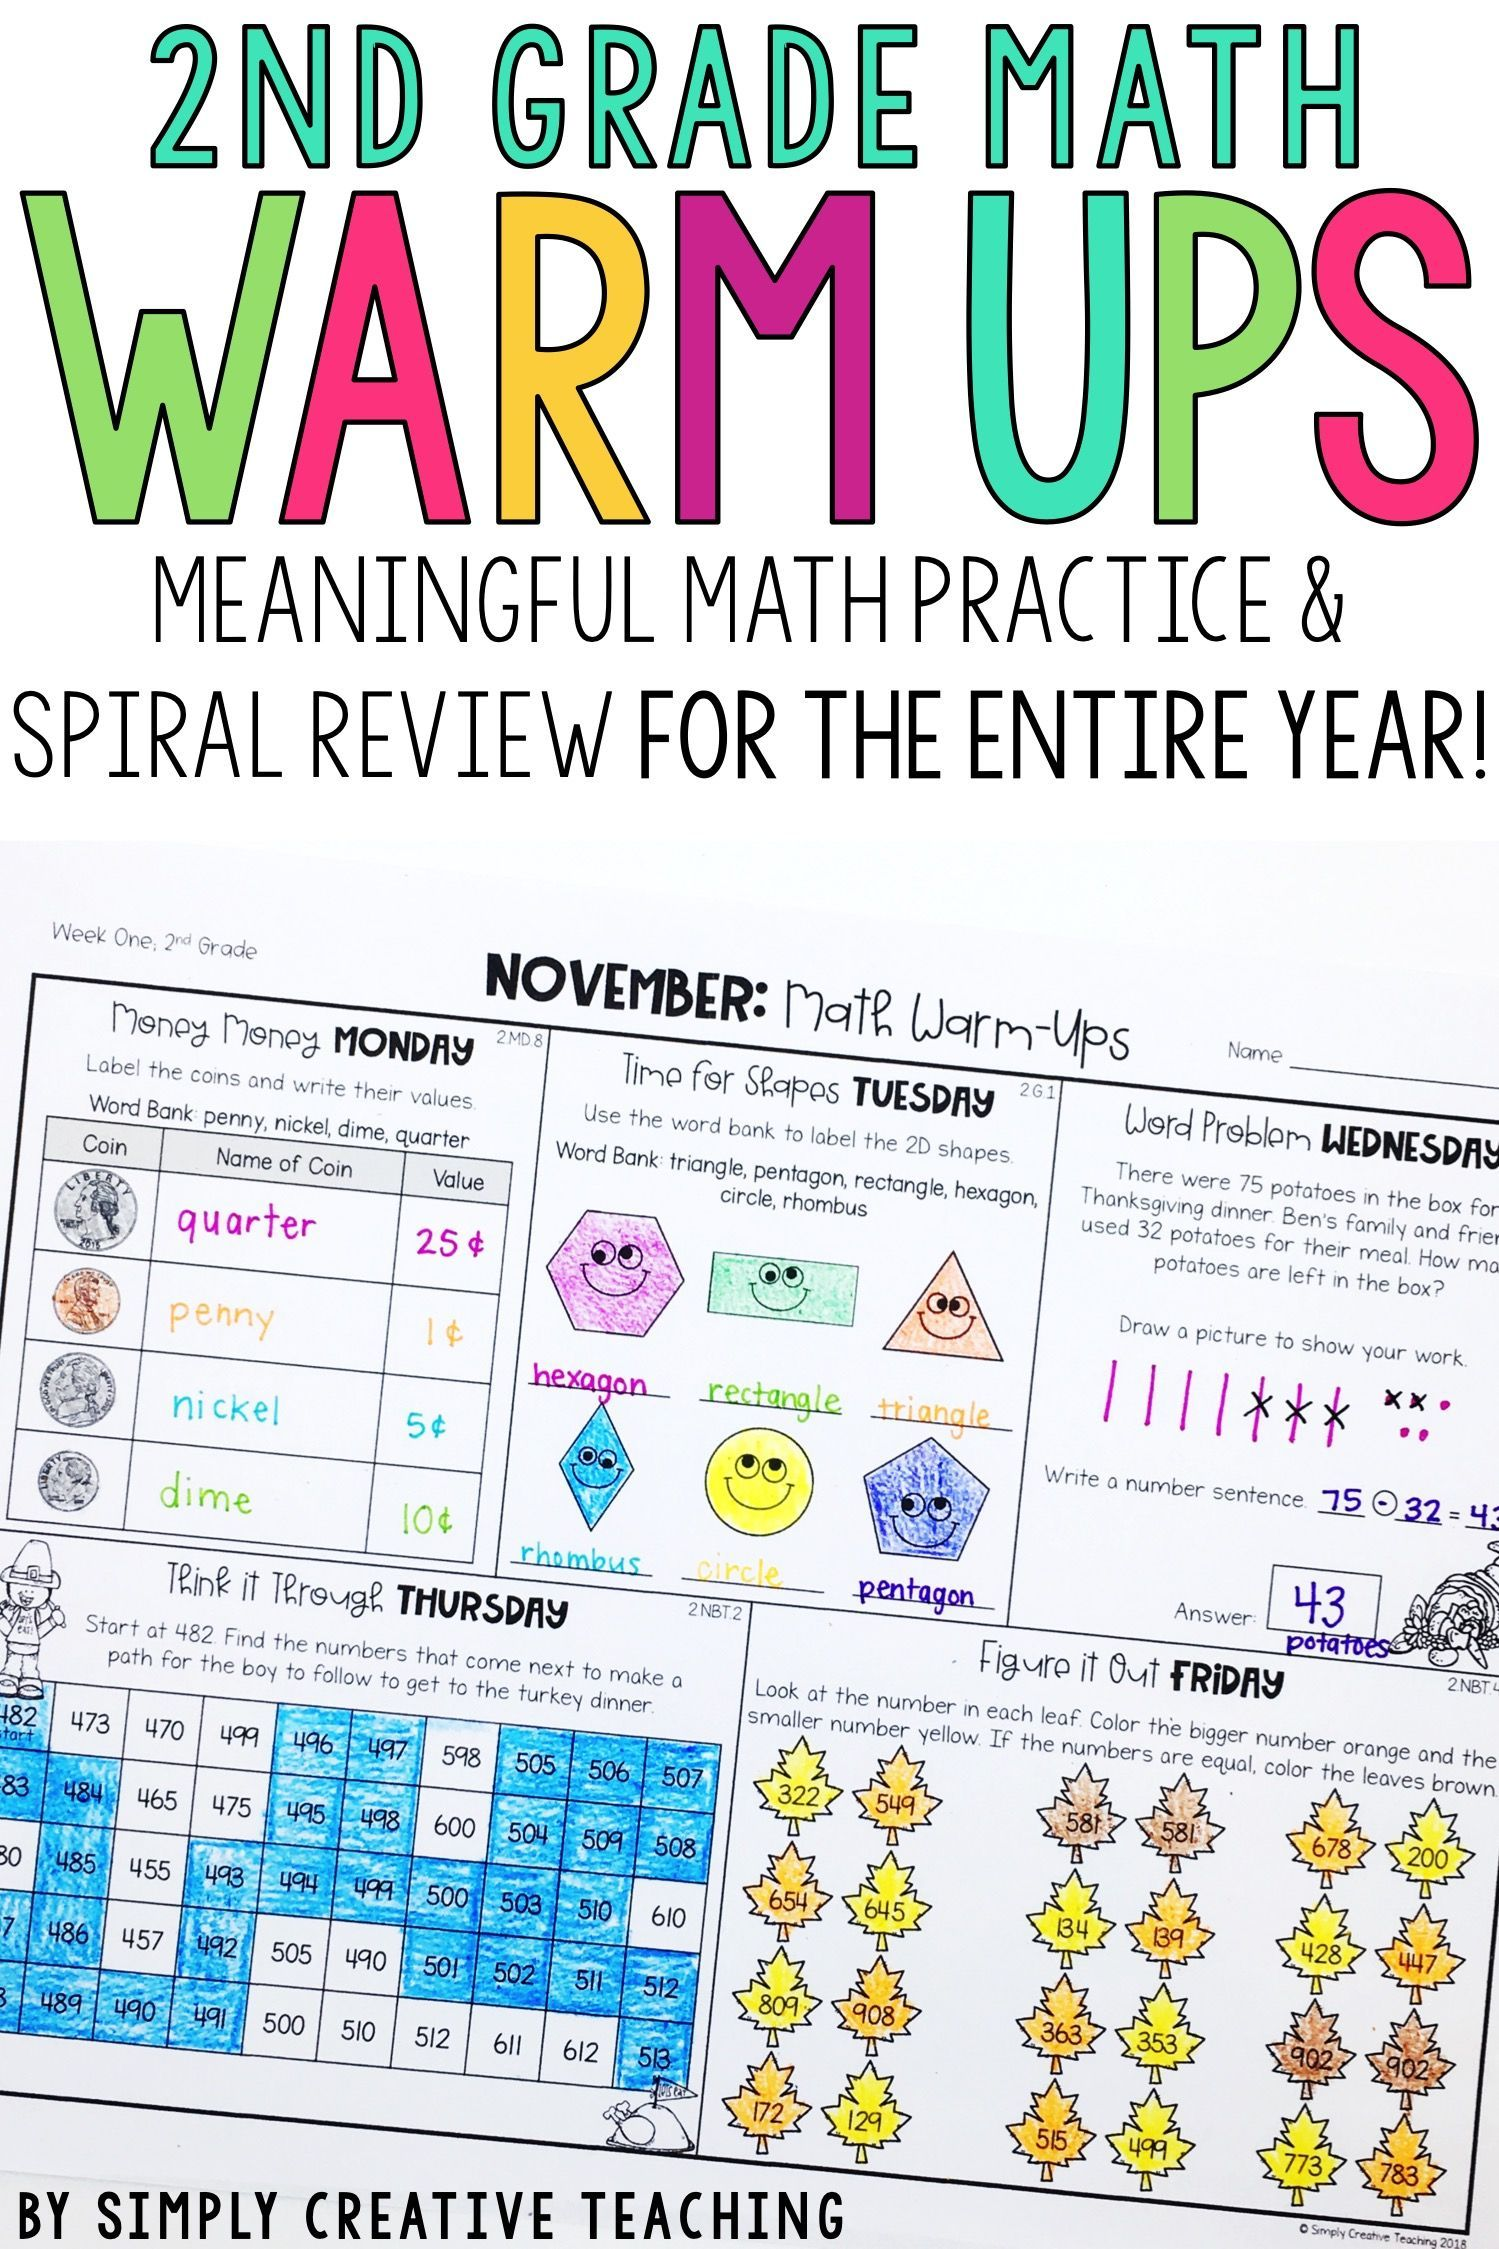 2nd Grade Weekly Math Warm Ups Amp Daily Spiral Review